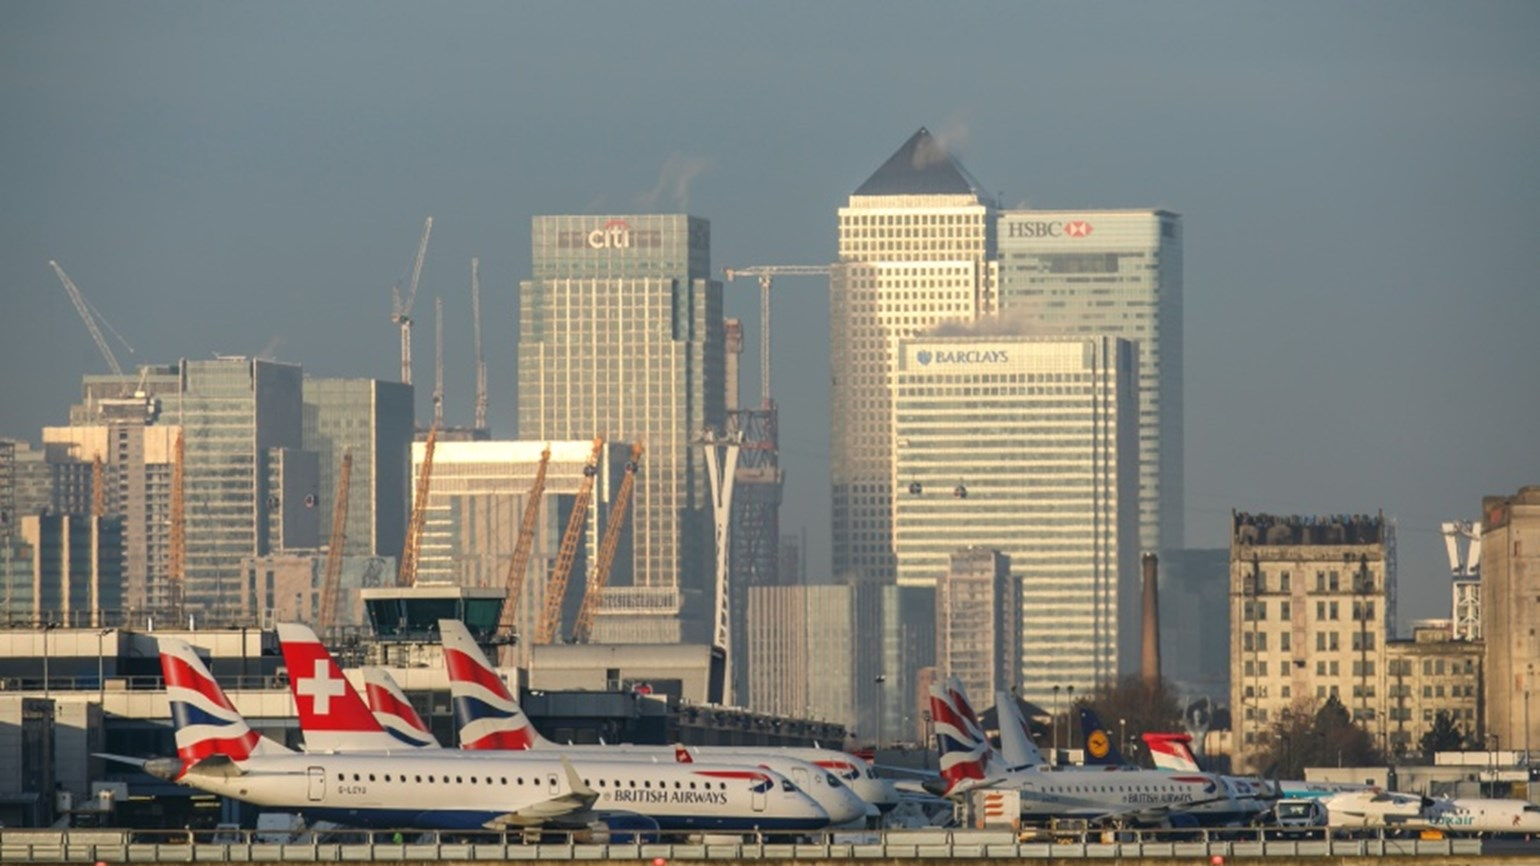 London City airport airfield